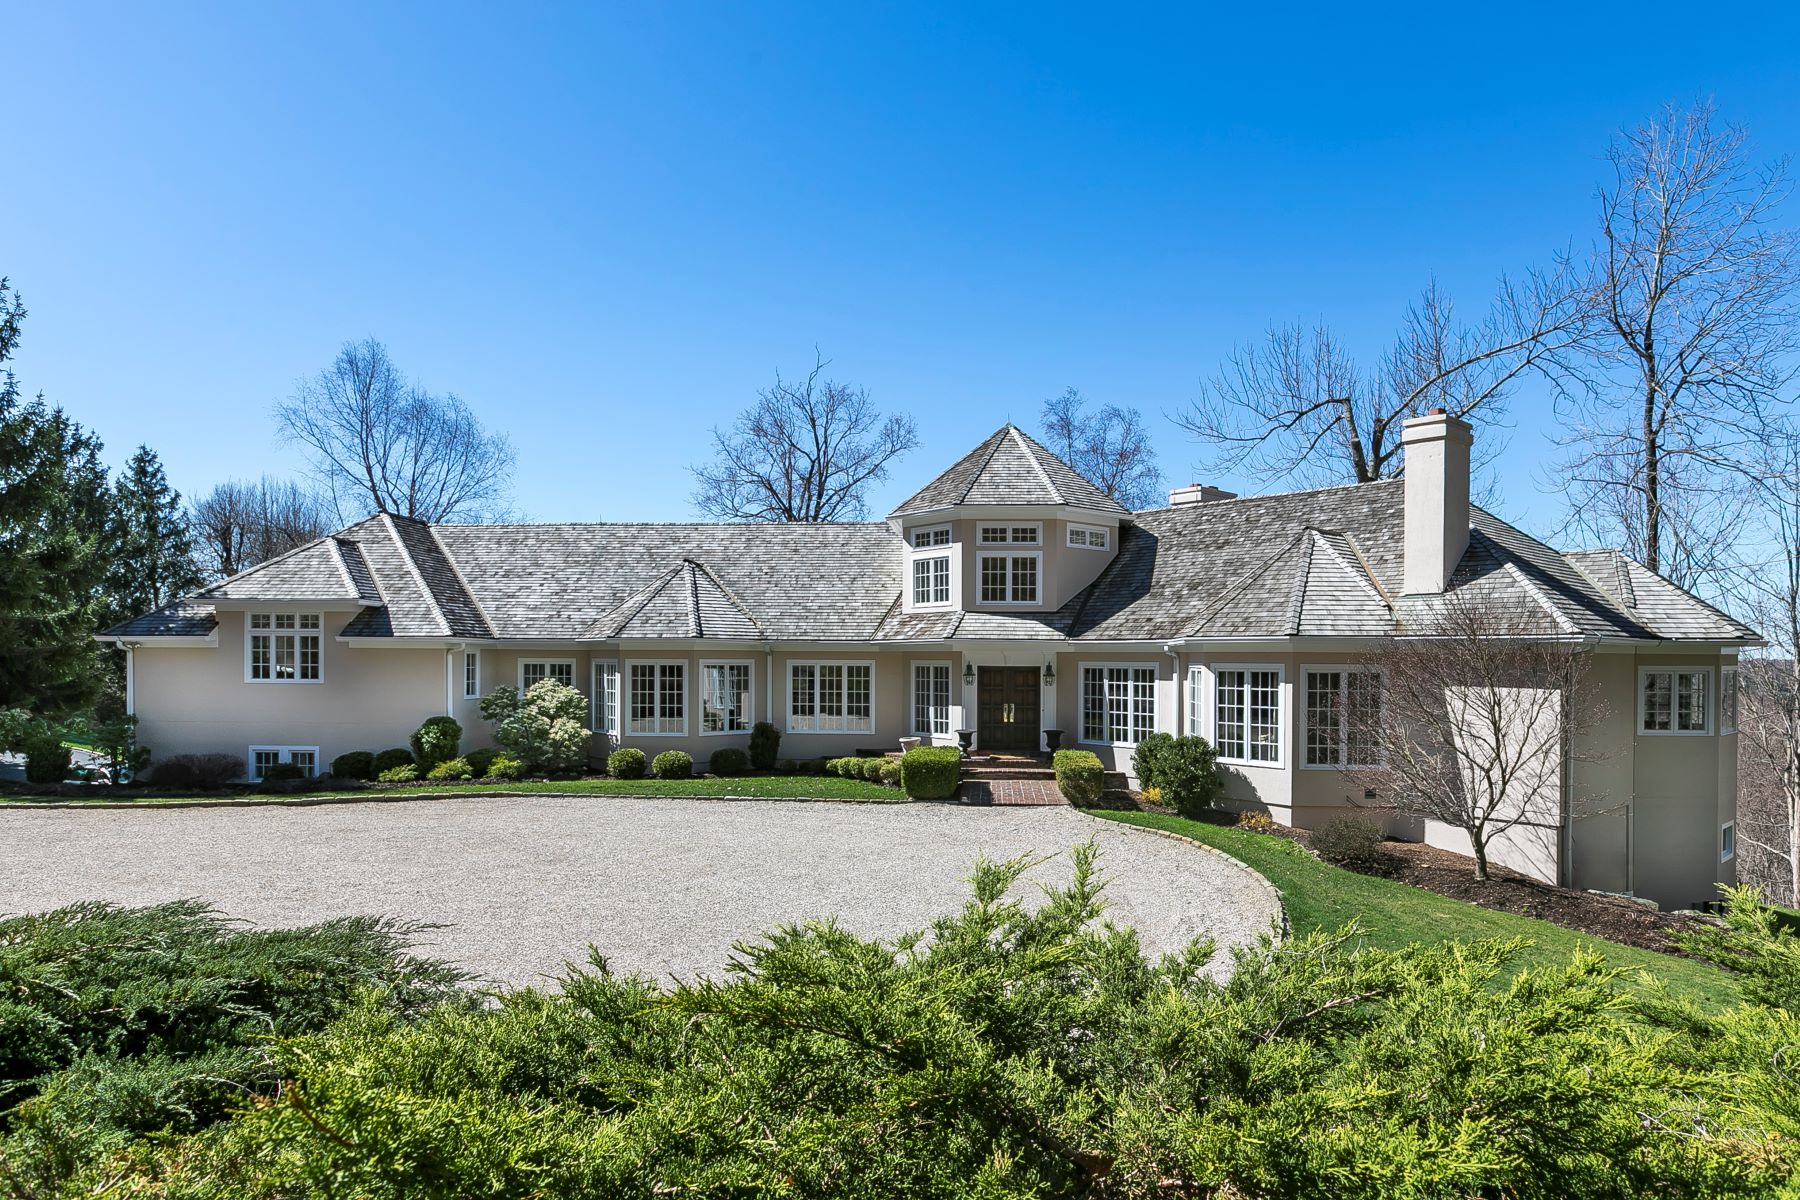 single family homes for Sale at Designer Home with Spectacular Views 154 Oscaleta Road, Ridgefield, Connecticut 06877 United States